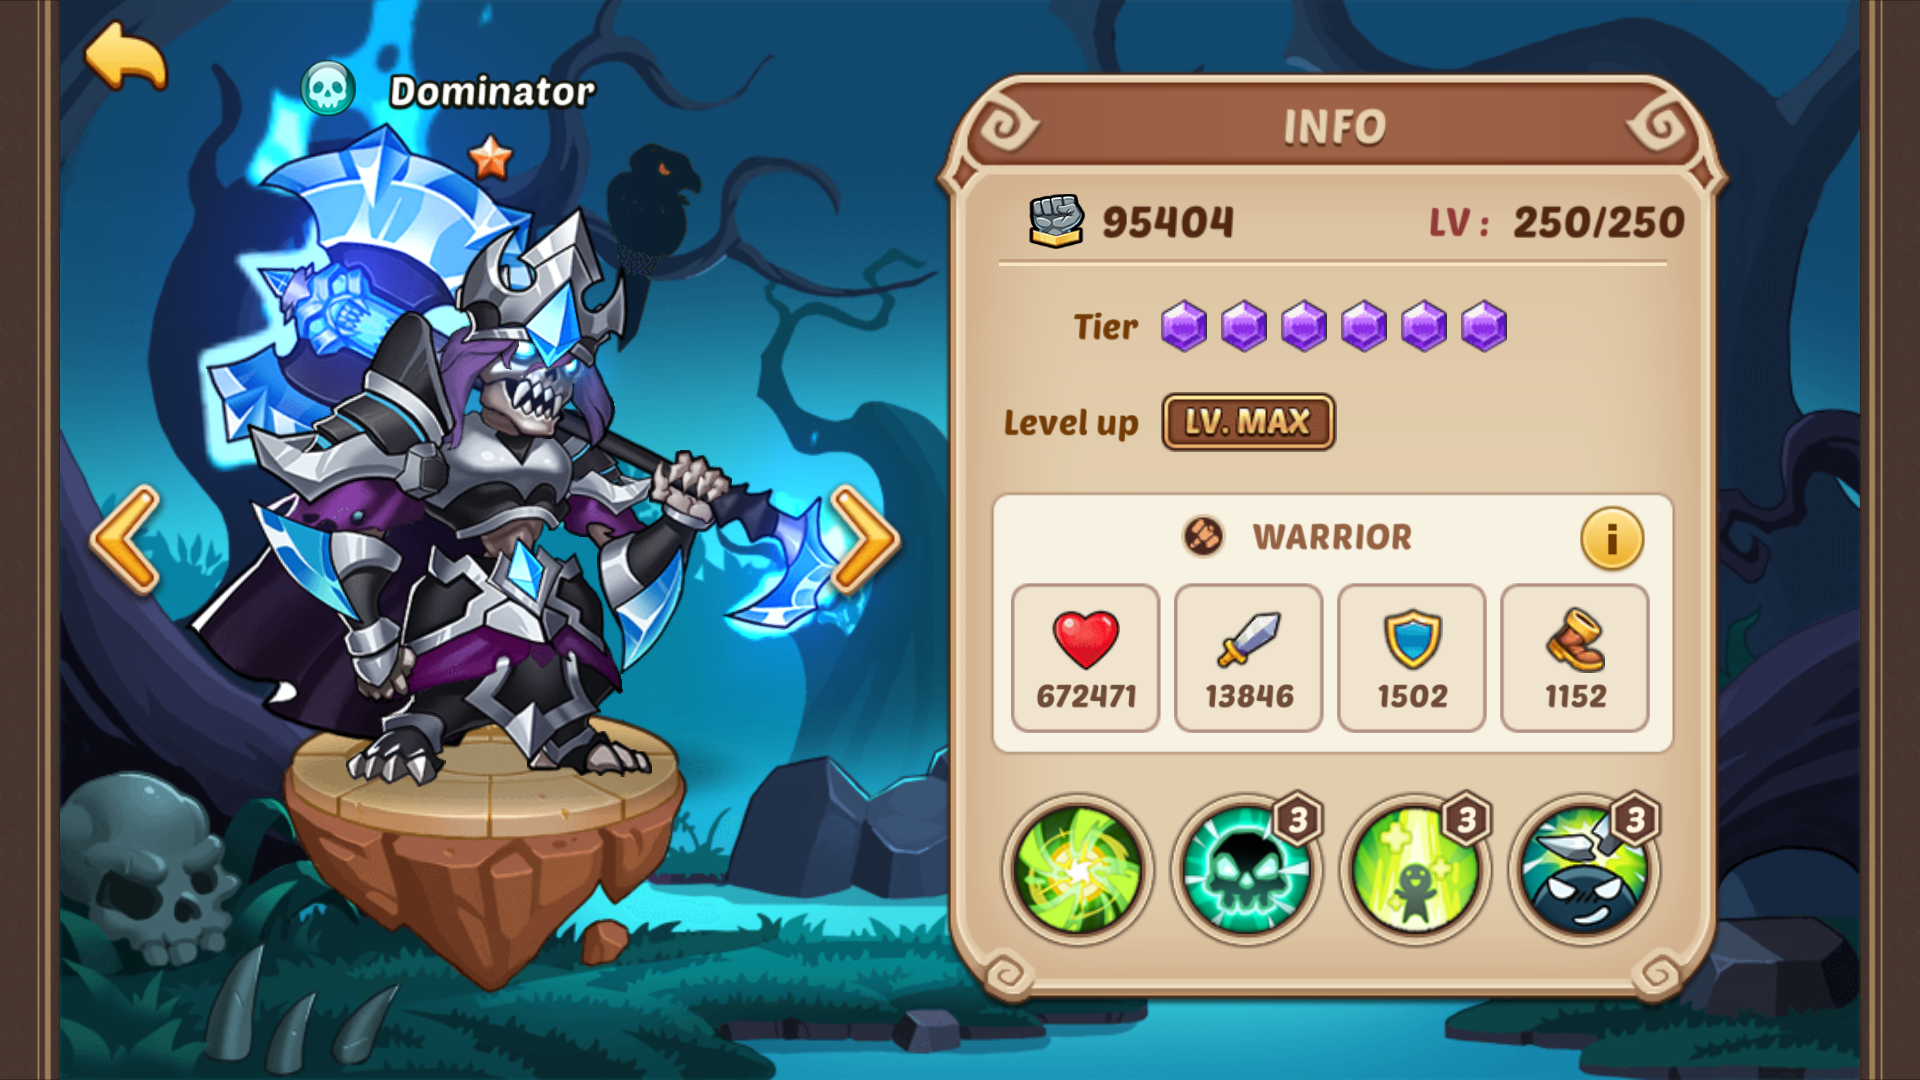 Dominator | IdleHeroes Wiki | FANDOM powered by Wikia